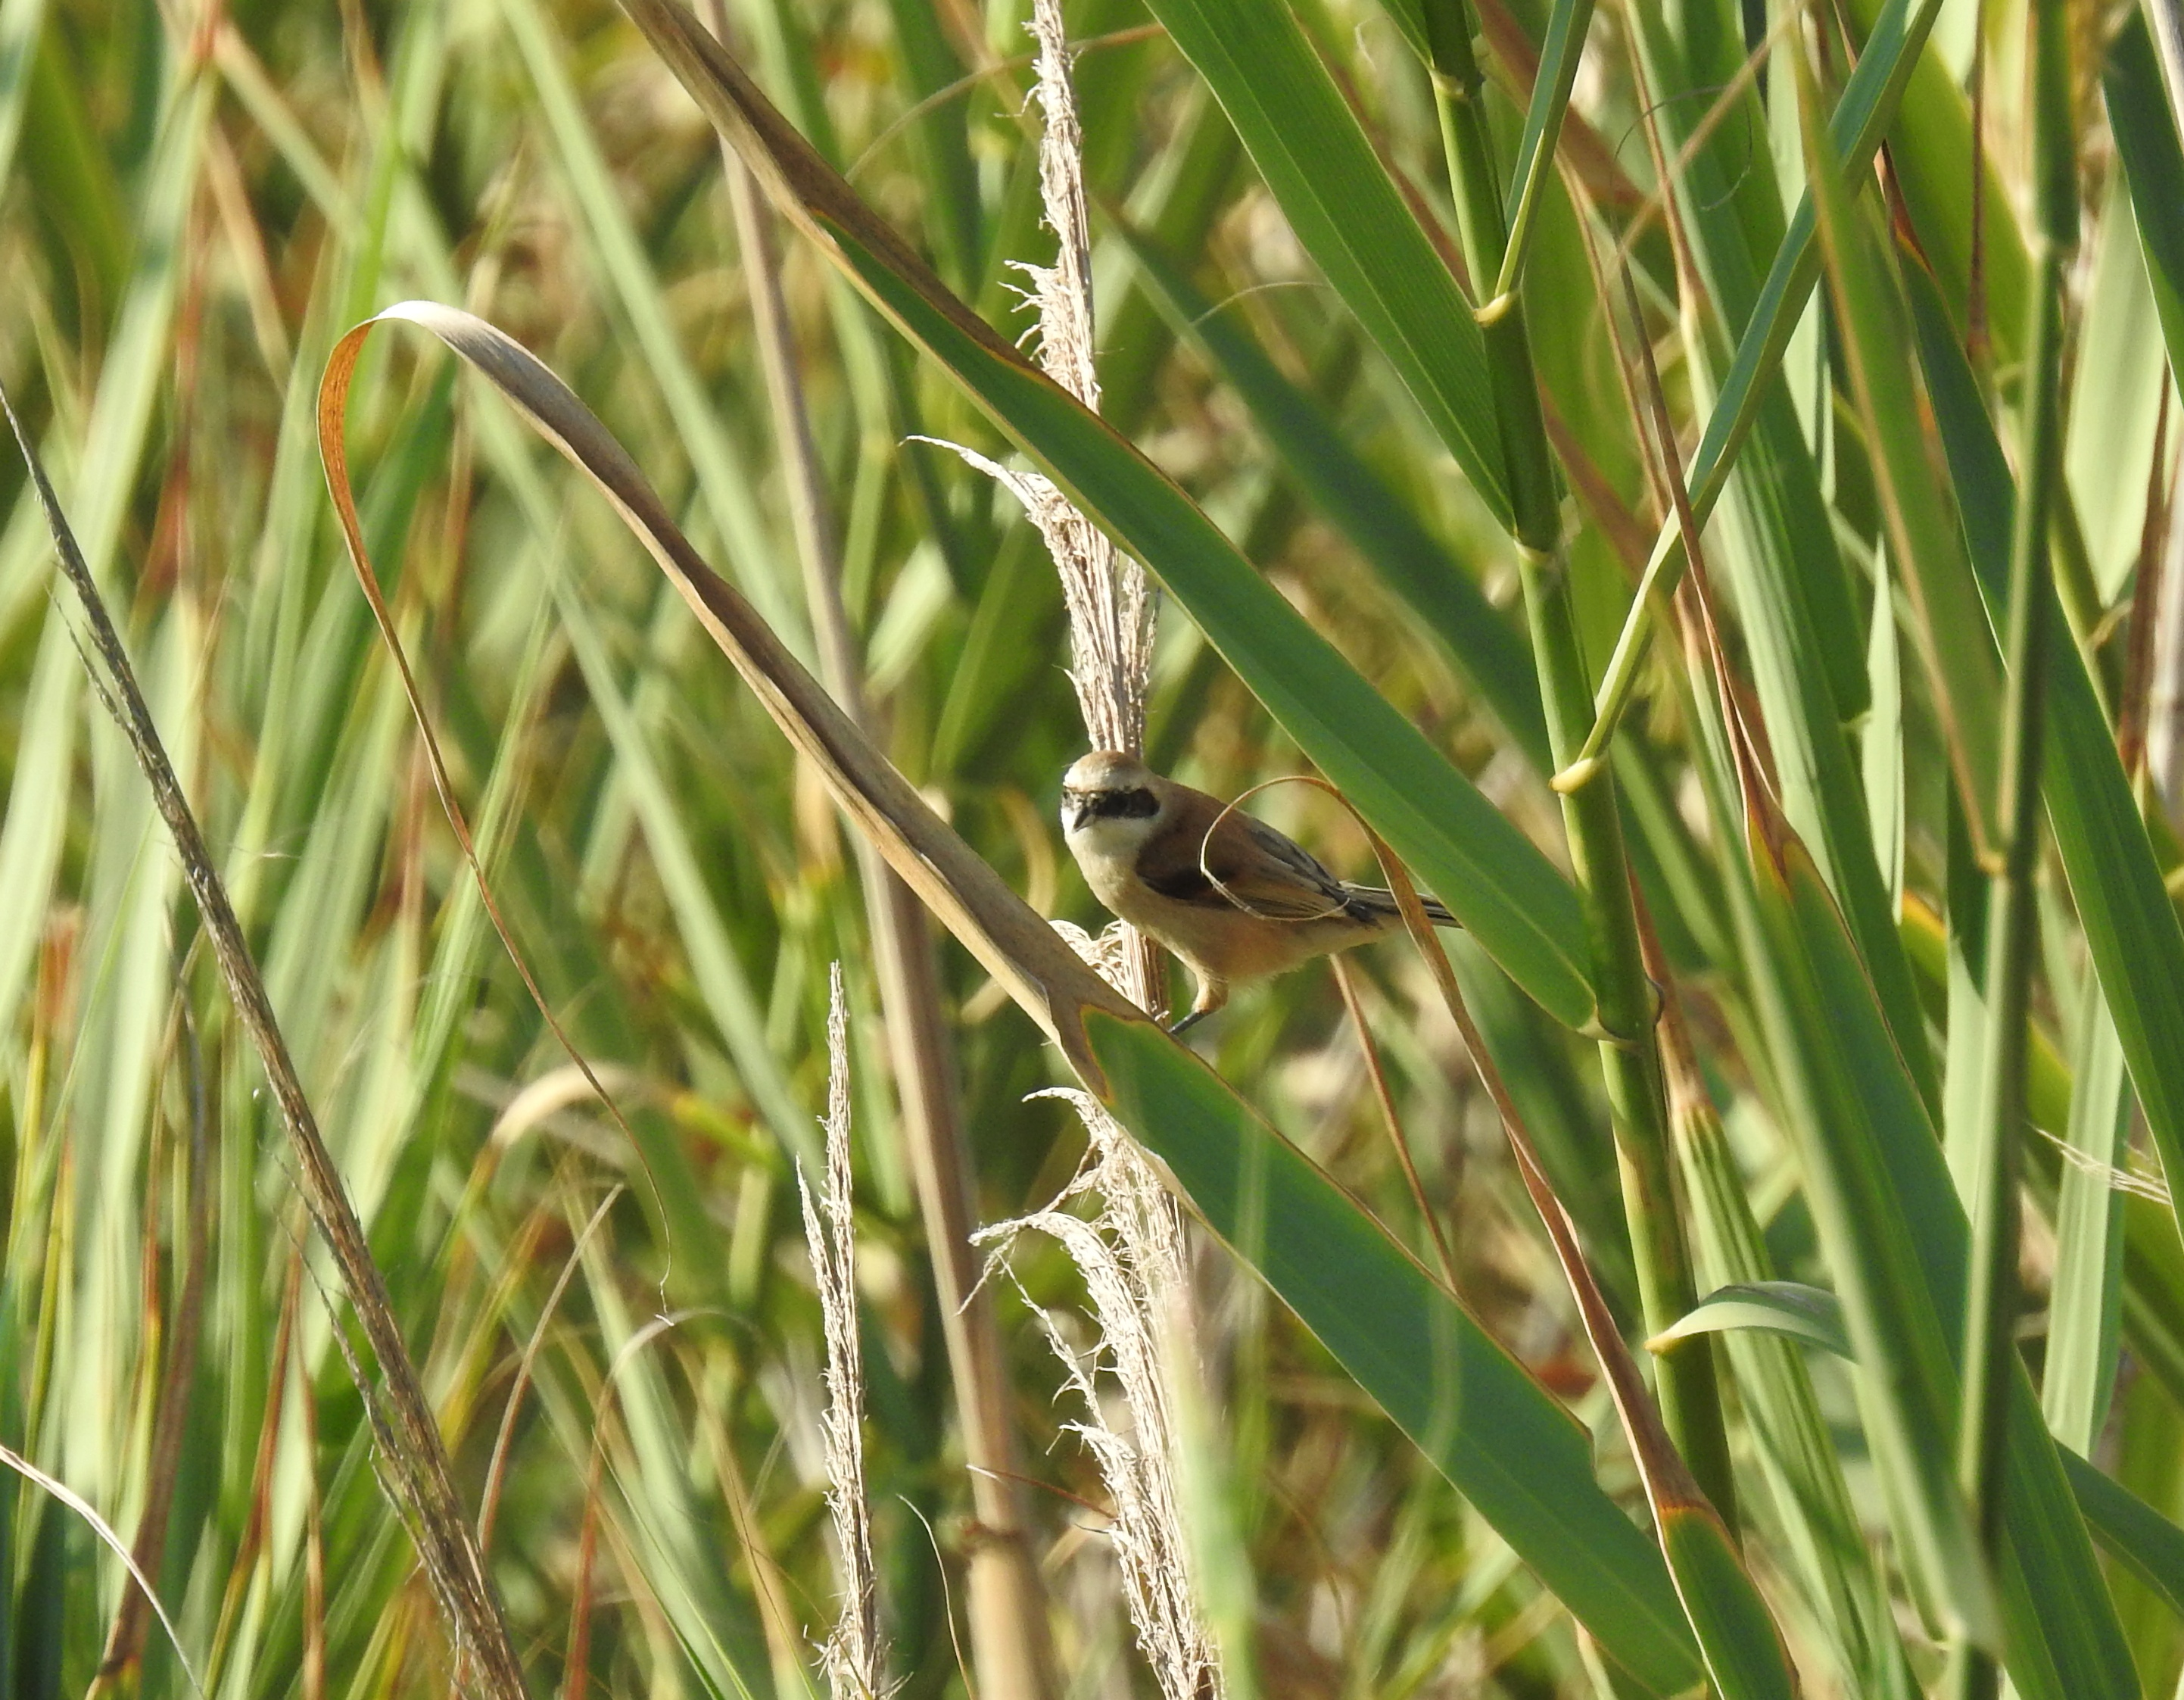 Penduline tit in the reeds